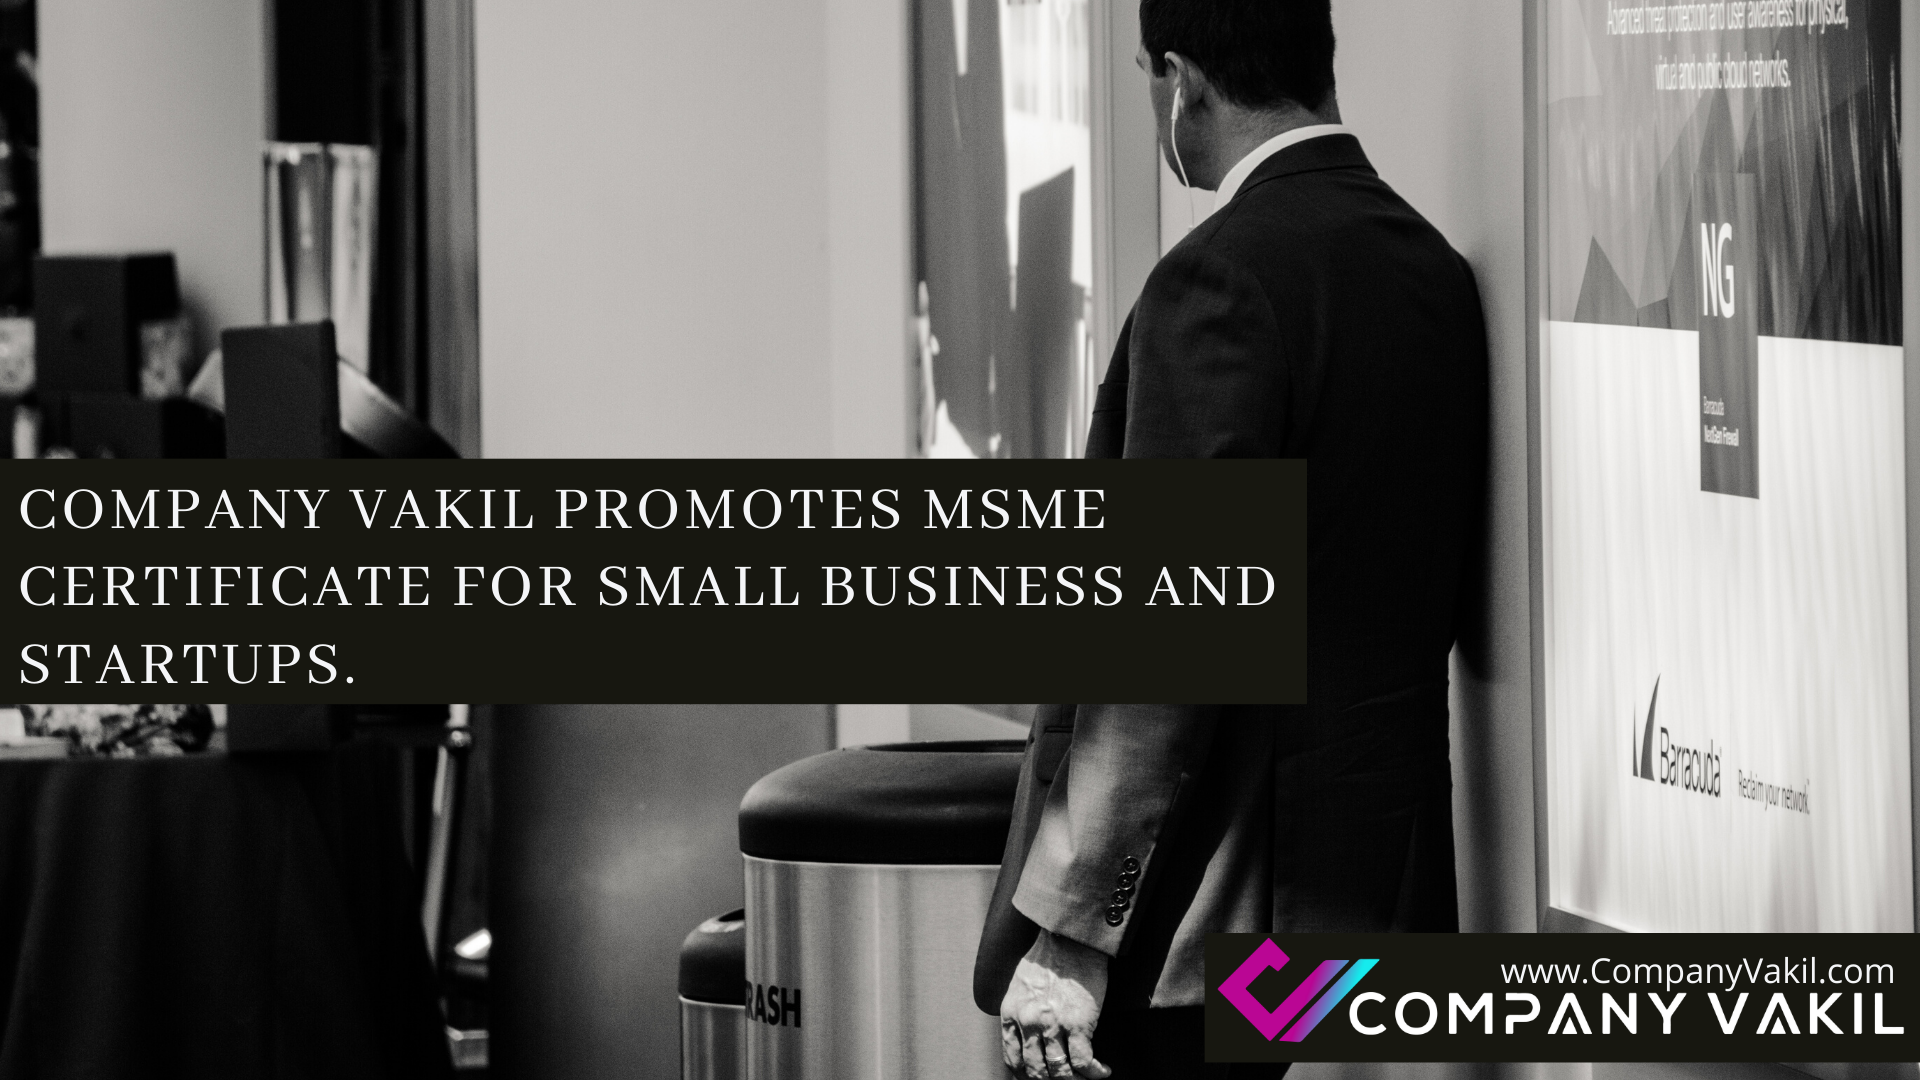 Company Vakil promotes MSME Registration in India for Small business and Startups